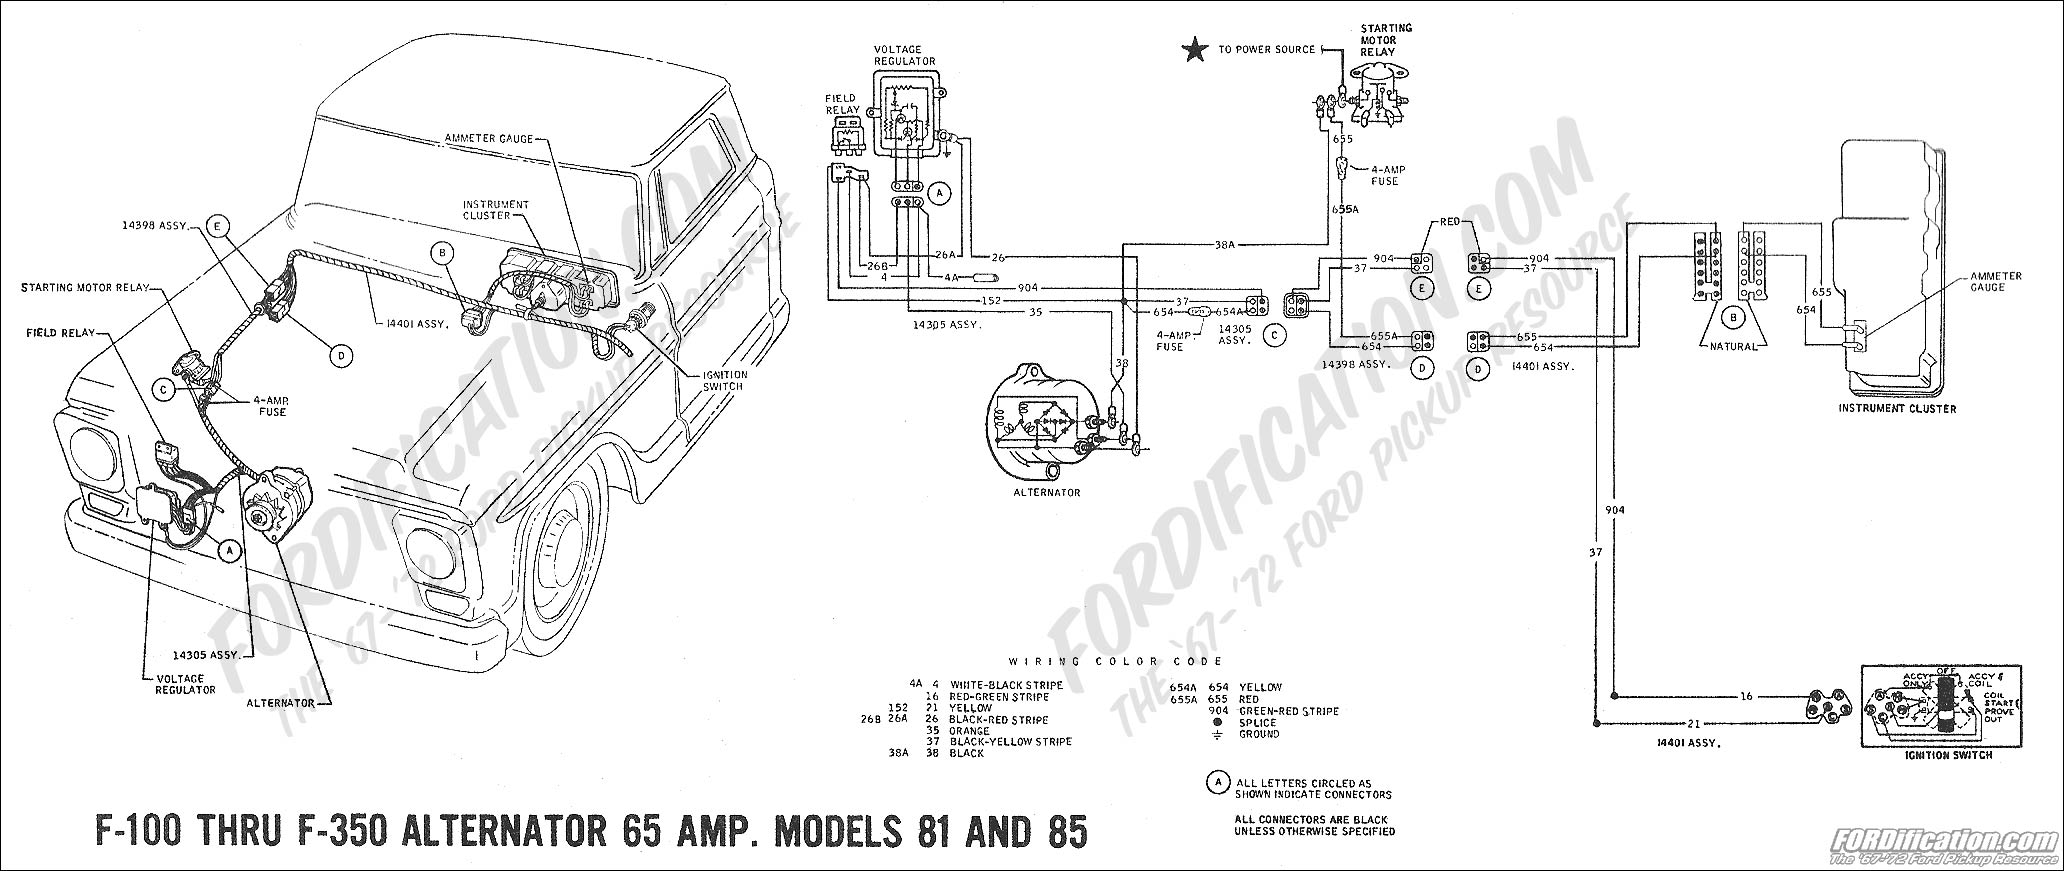 Discussion T21297 ds544302 besides Wiring Diagram For A 1997 Ford F150 furthermore Drl additionally 2001 Ford F150 Fuse Box Diagram Where Can I Find A Diagram For My Fuse Panel On My 93 F150 moreover Discussion C11488 ds546441. on 2011 ford f 150 fuse panel